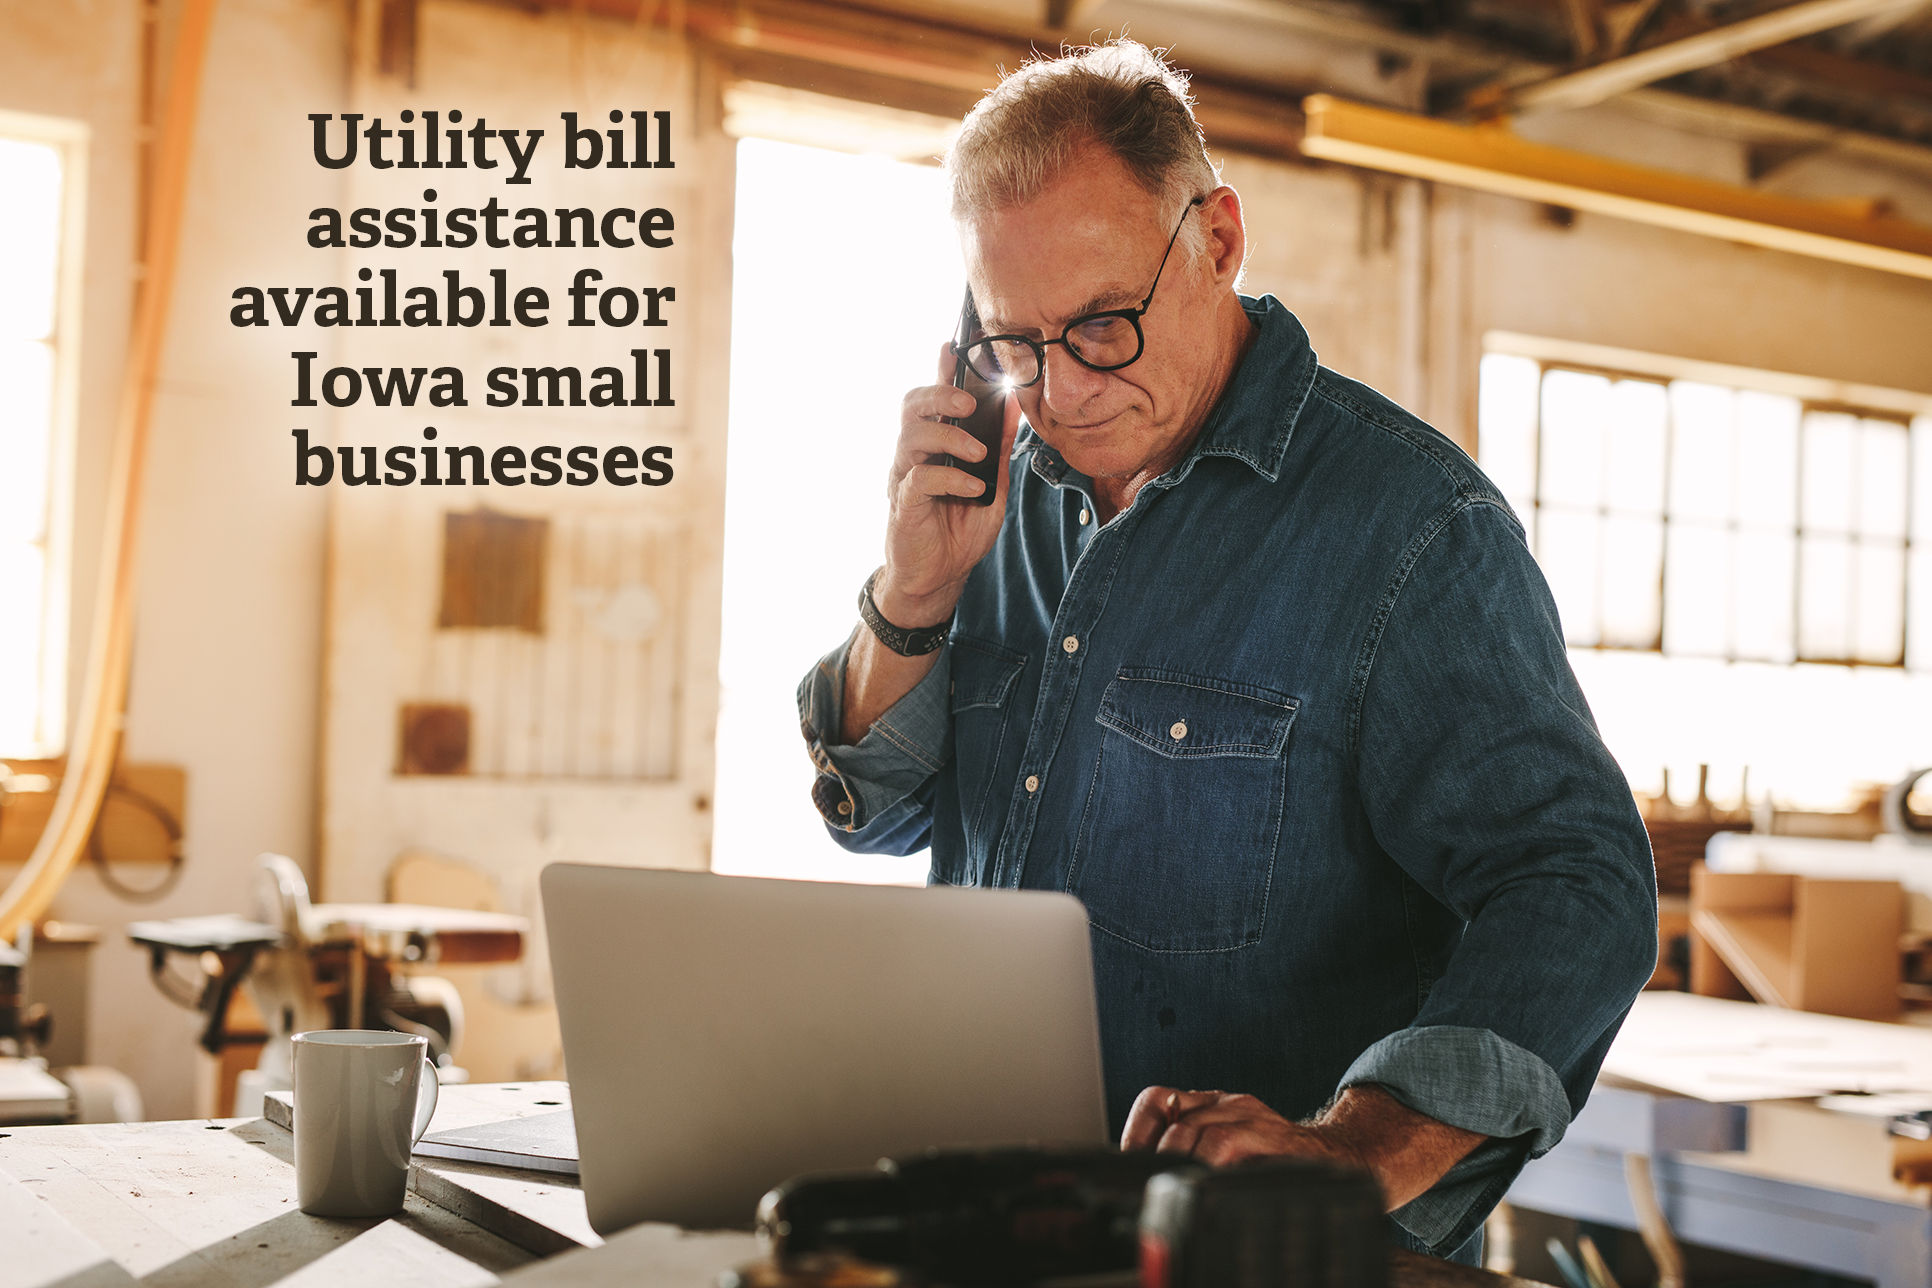 Utility-bill-assistance-for-Iowa-small-businesses_RGB-for-digital.png?mtime=20200720181543#asset:5430